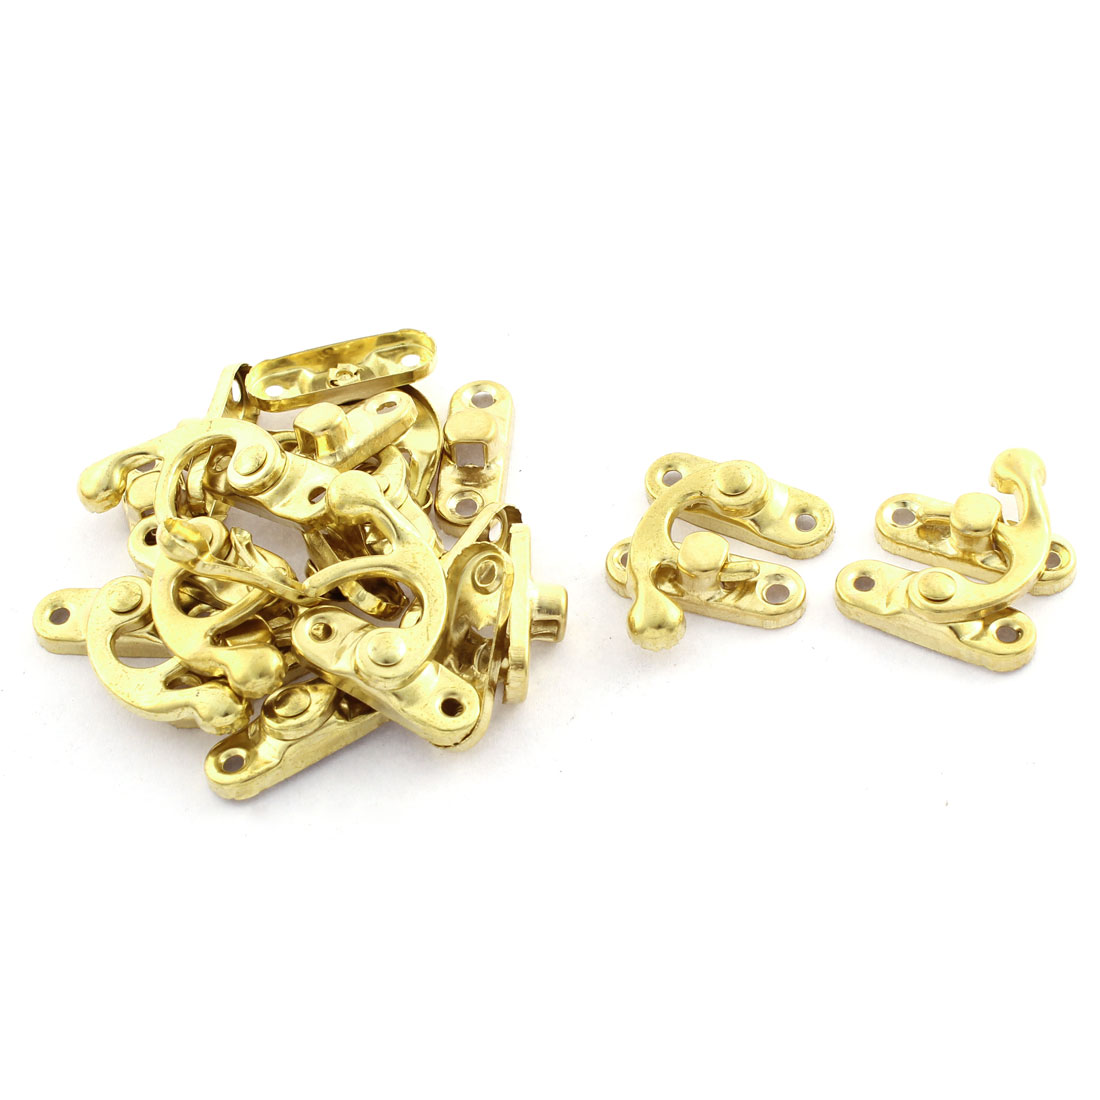 10 Pcs Left Swing Arm Clasp Screw Mounted Wooden Box Latch 3mm Diameter Hole